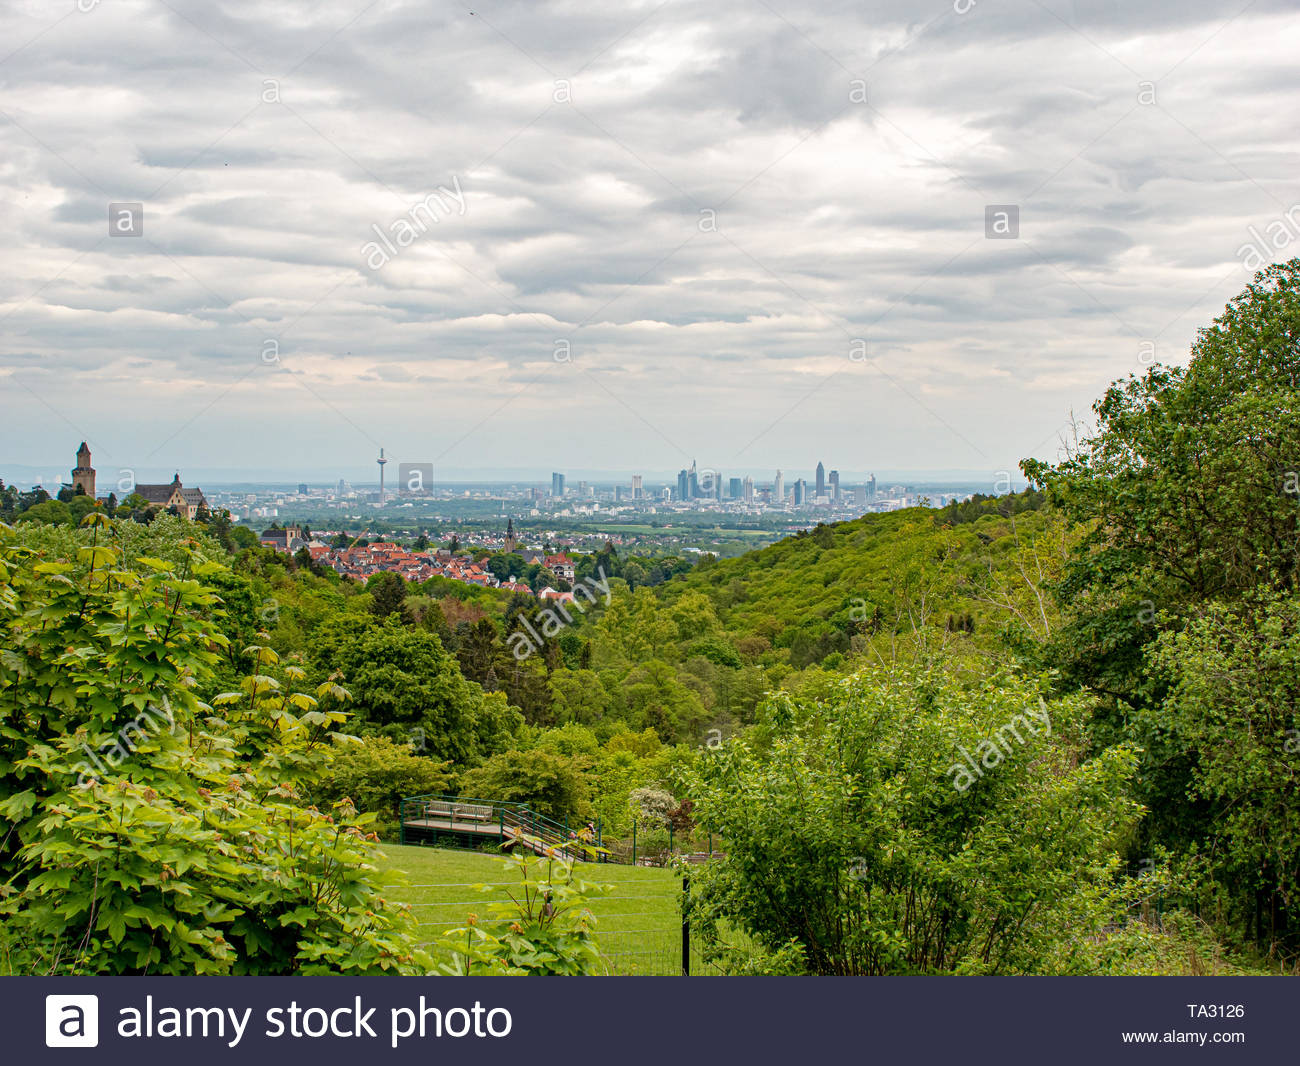 in the distance a visible silhouette of skyscrapers of a big city - Stock Image